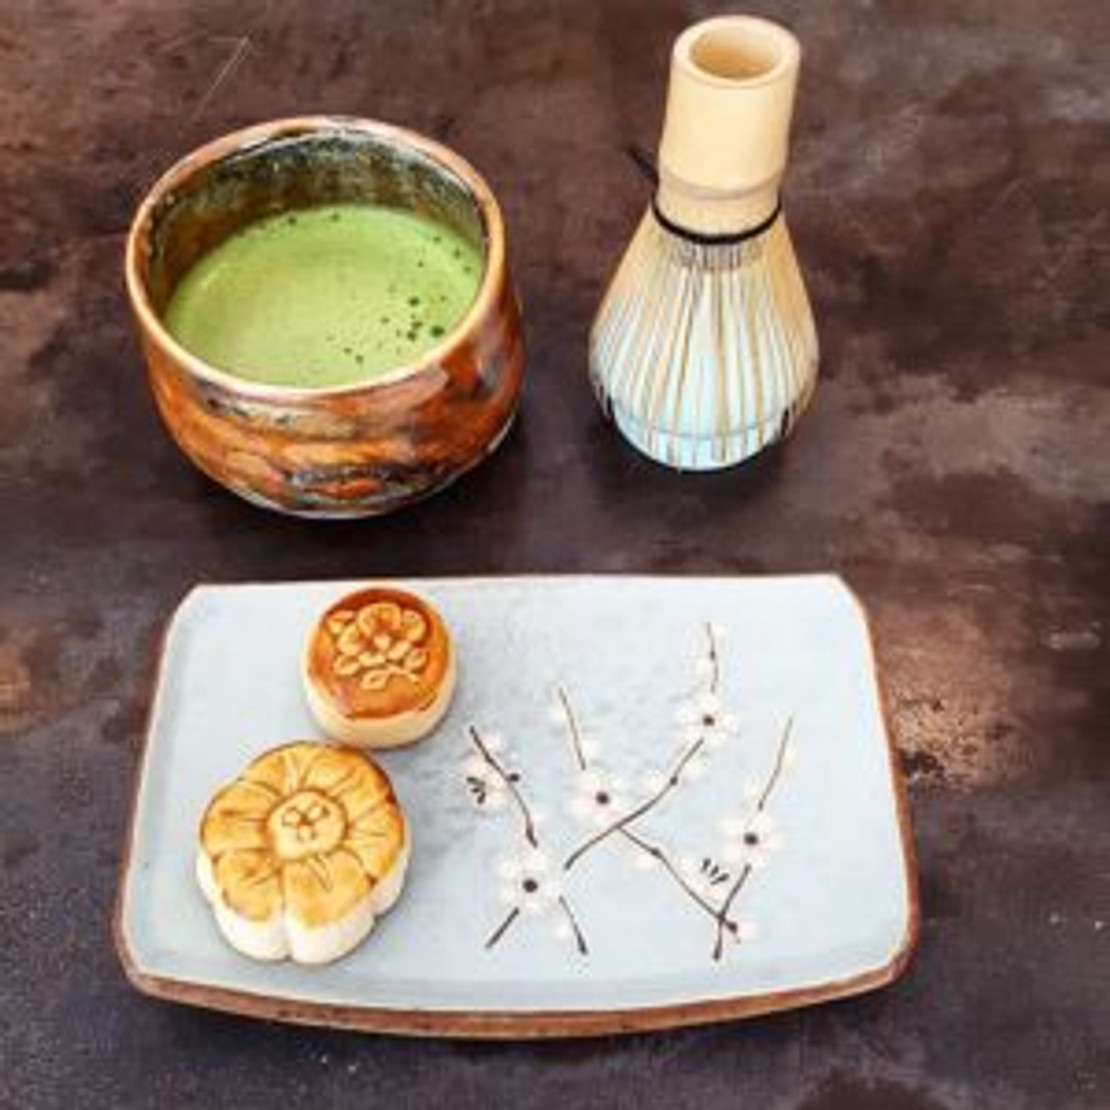 Our Matcha Story